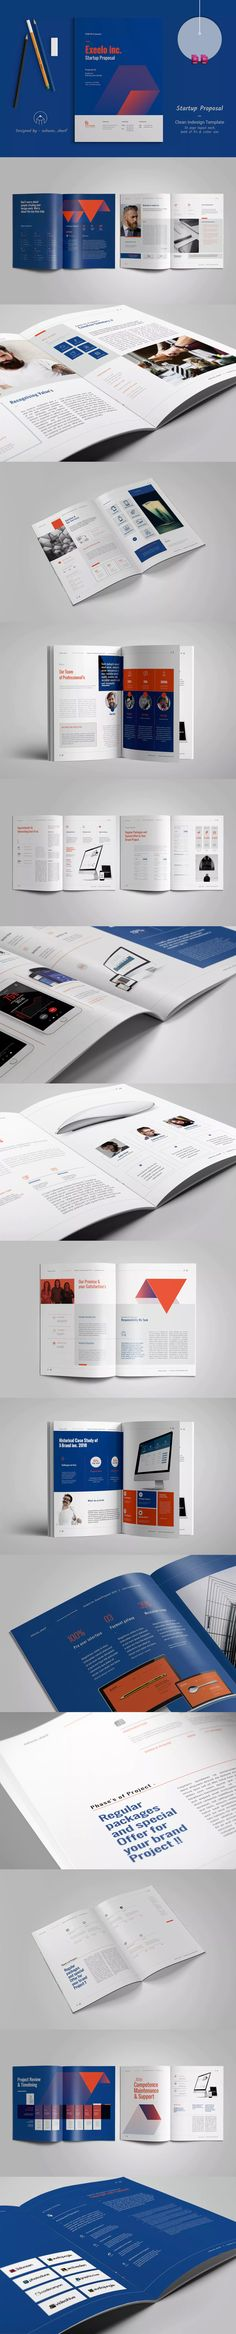 Modern Project Proposal \ Invoice Template InDesign INDD - 12 - project proposal